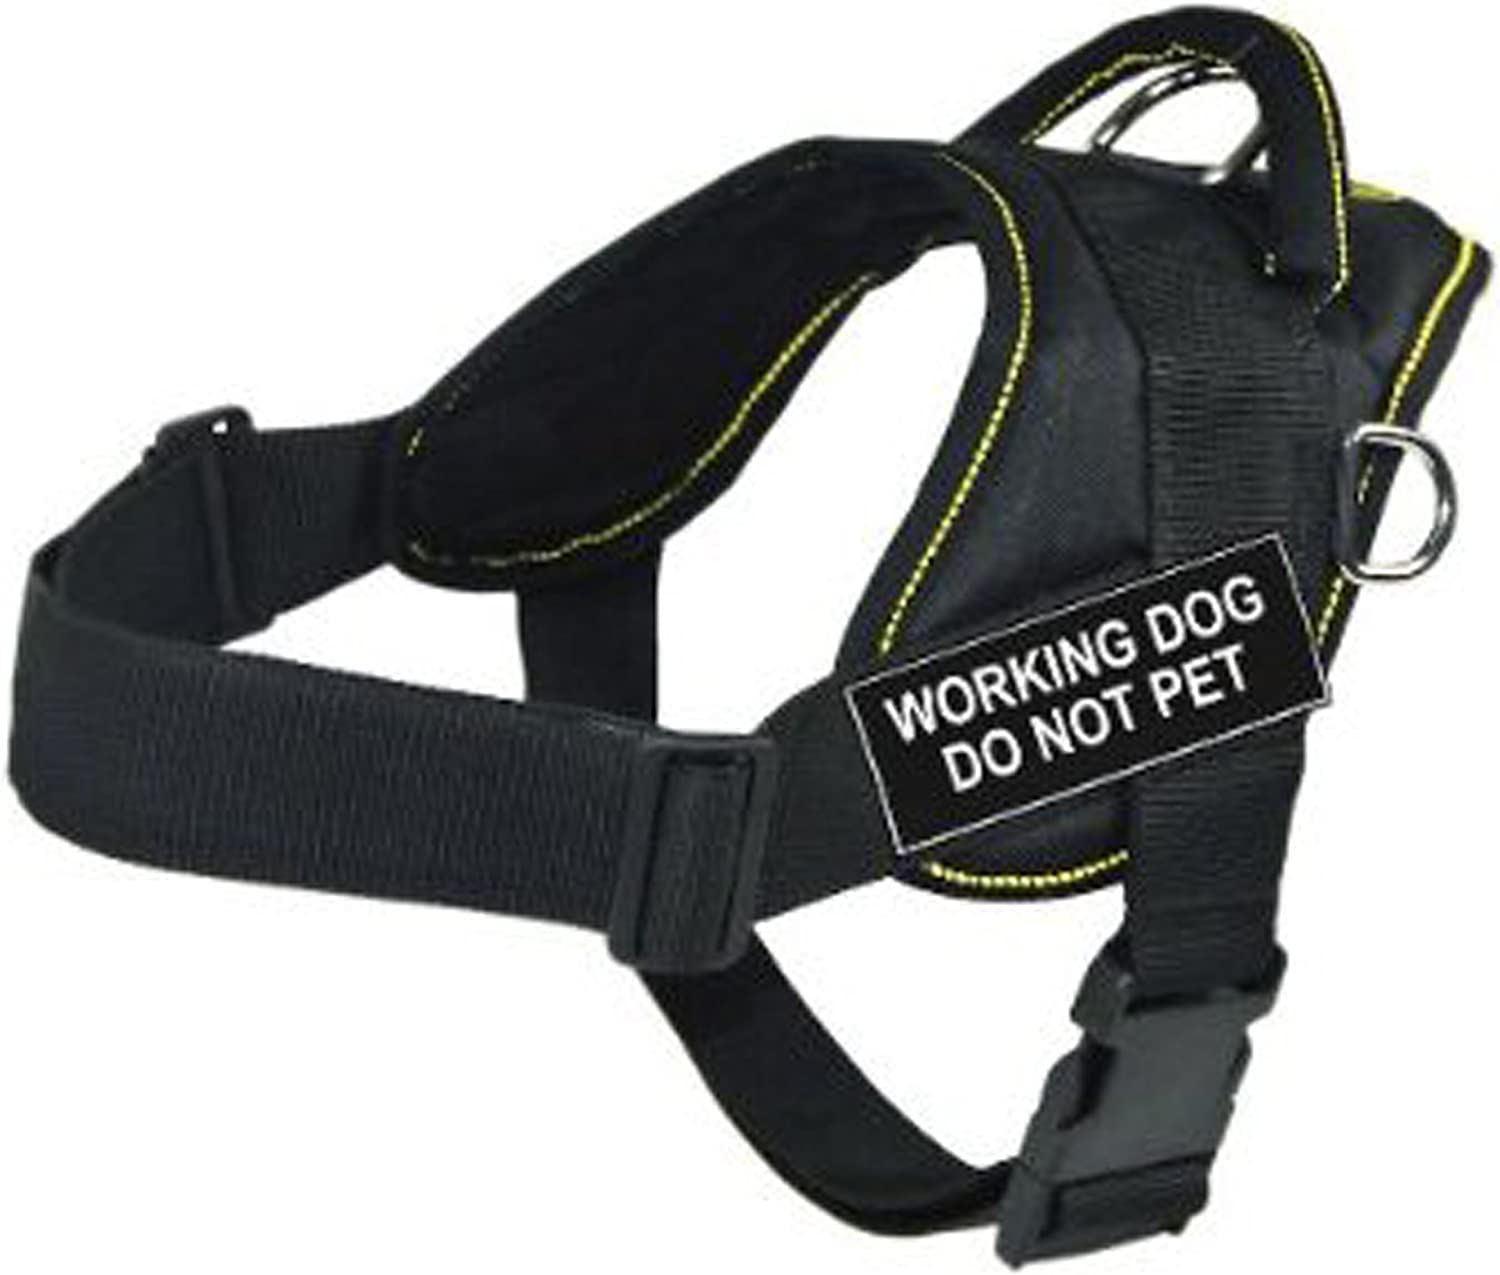 DT Fun Works Harness Working Dog Yellow Pet Not with Do Black Baltimore Mall 2021 new